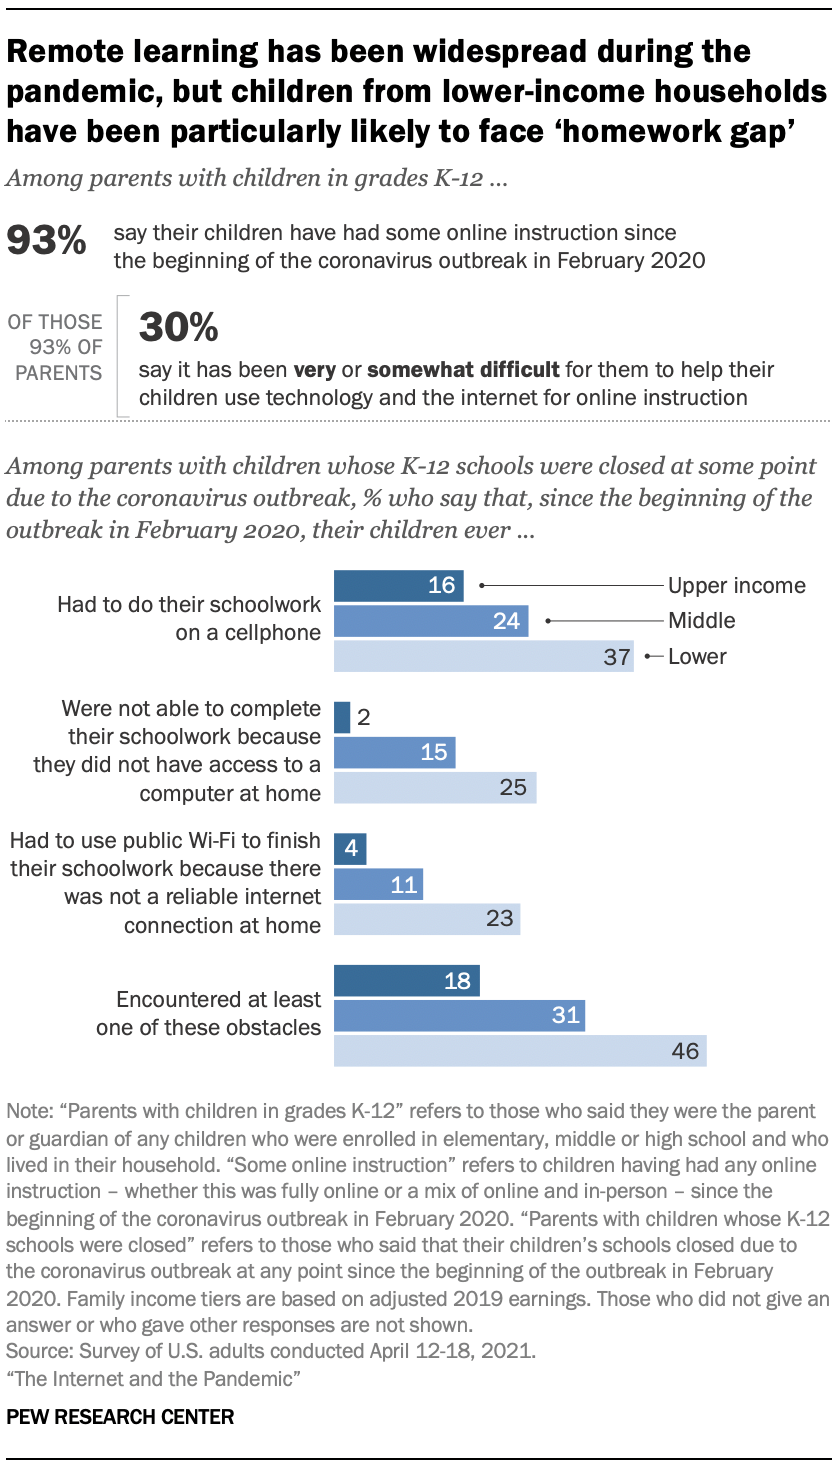 Remote learning has been widespread during the pandemic, but children from lower-income households have been particularly likely to face 'homework gap'